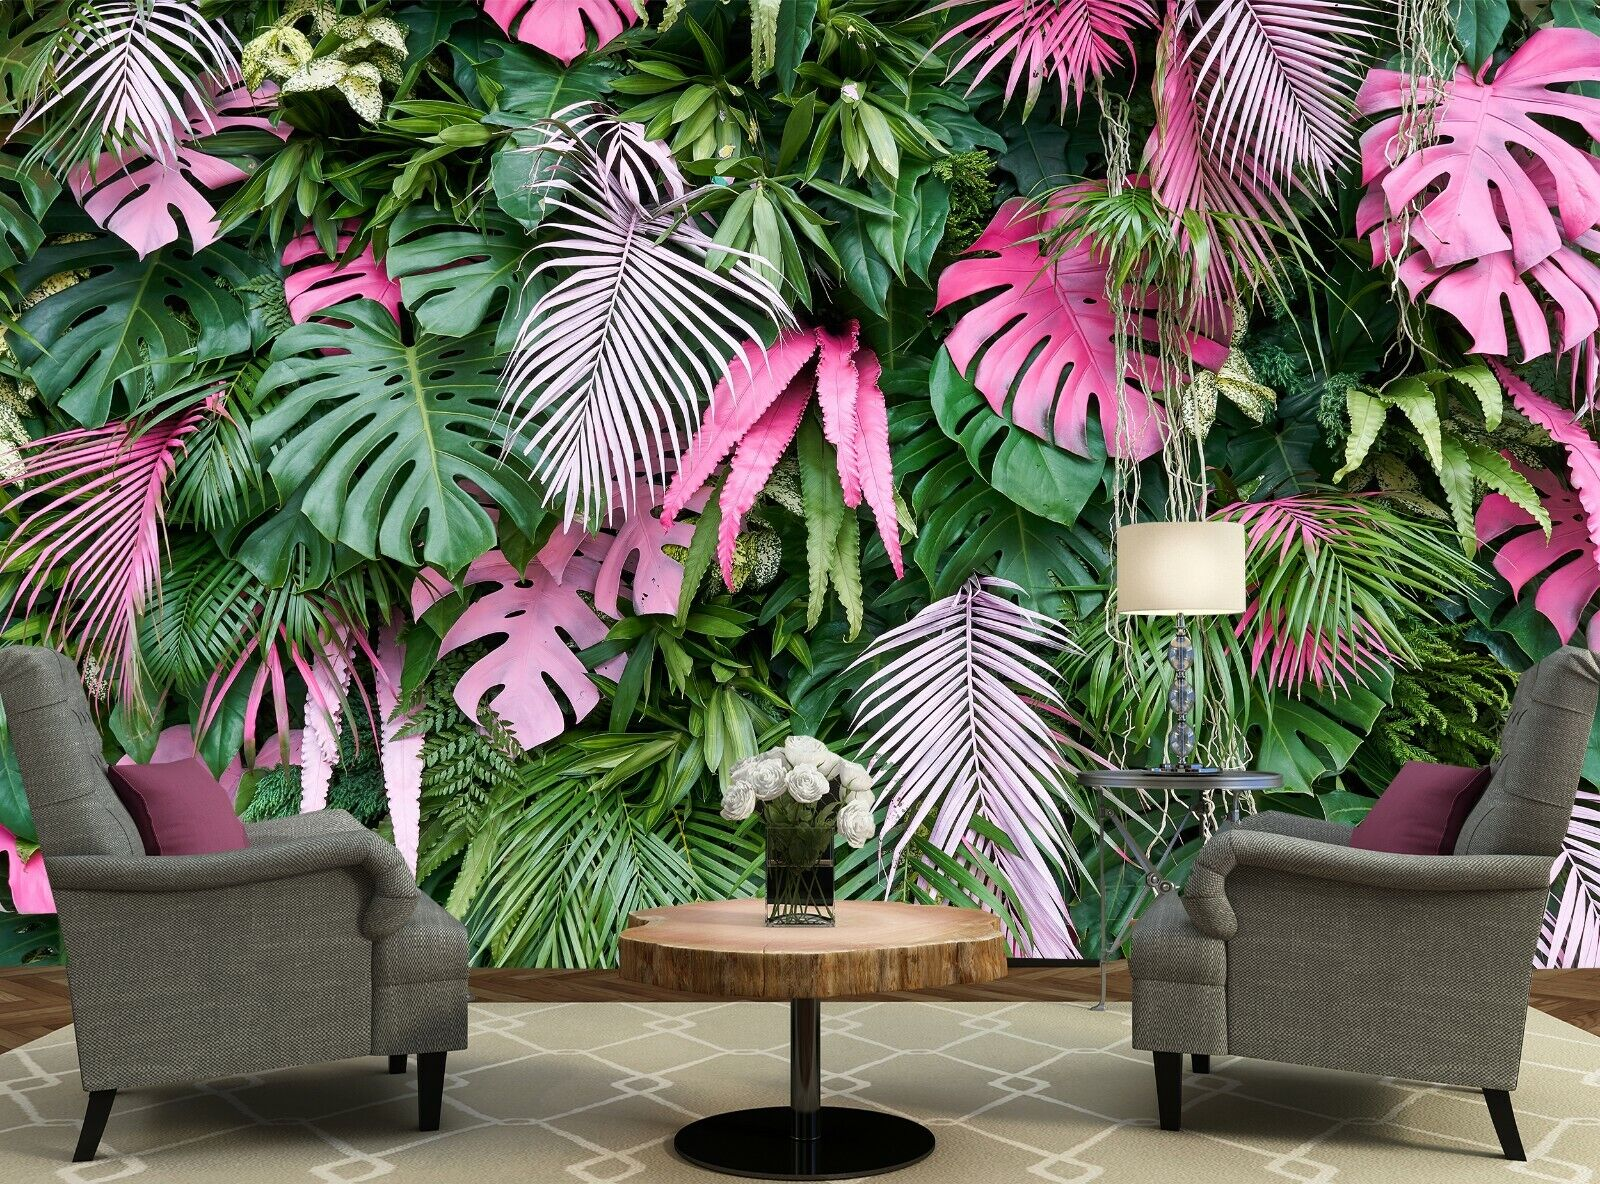 Tropical Trees Photo Wallpaper Wall Mural DECOR Paper Poster Free Paste